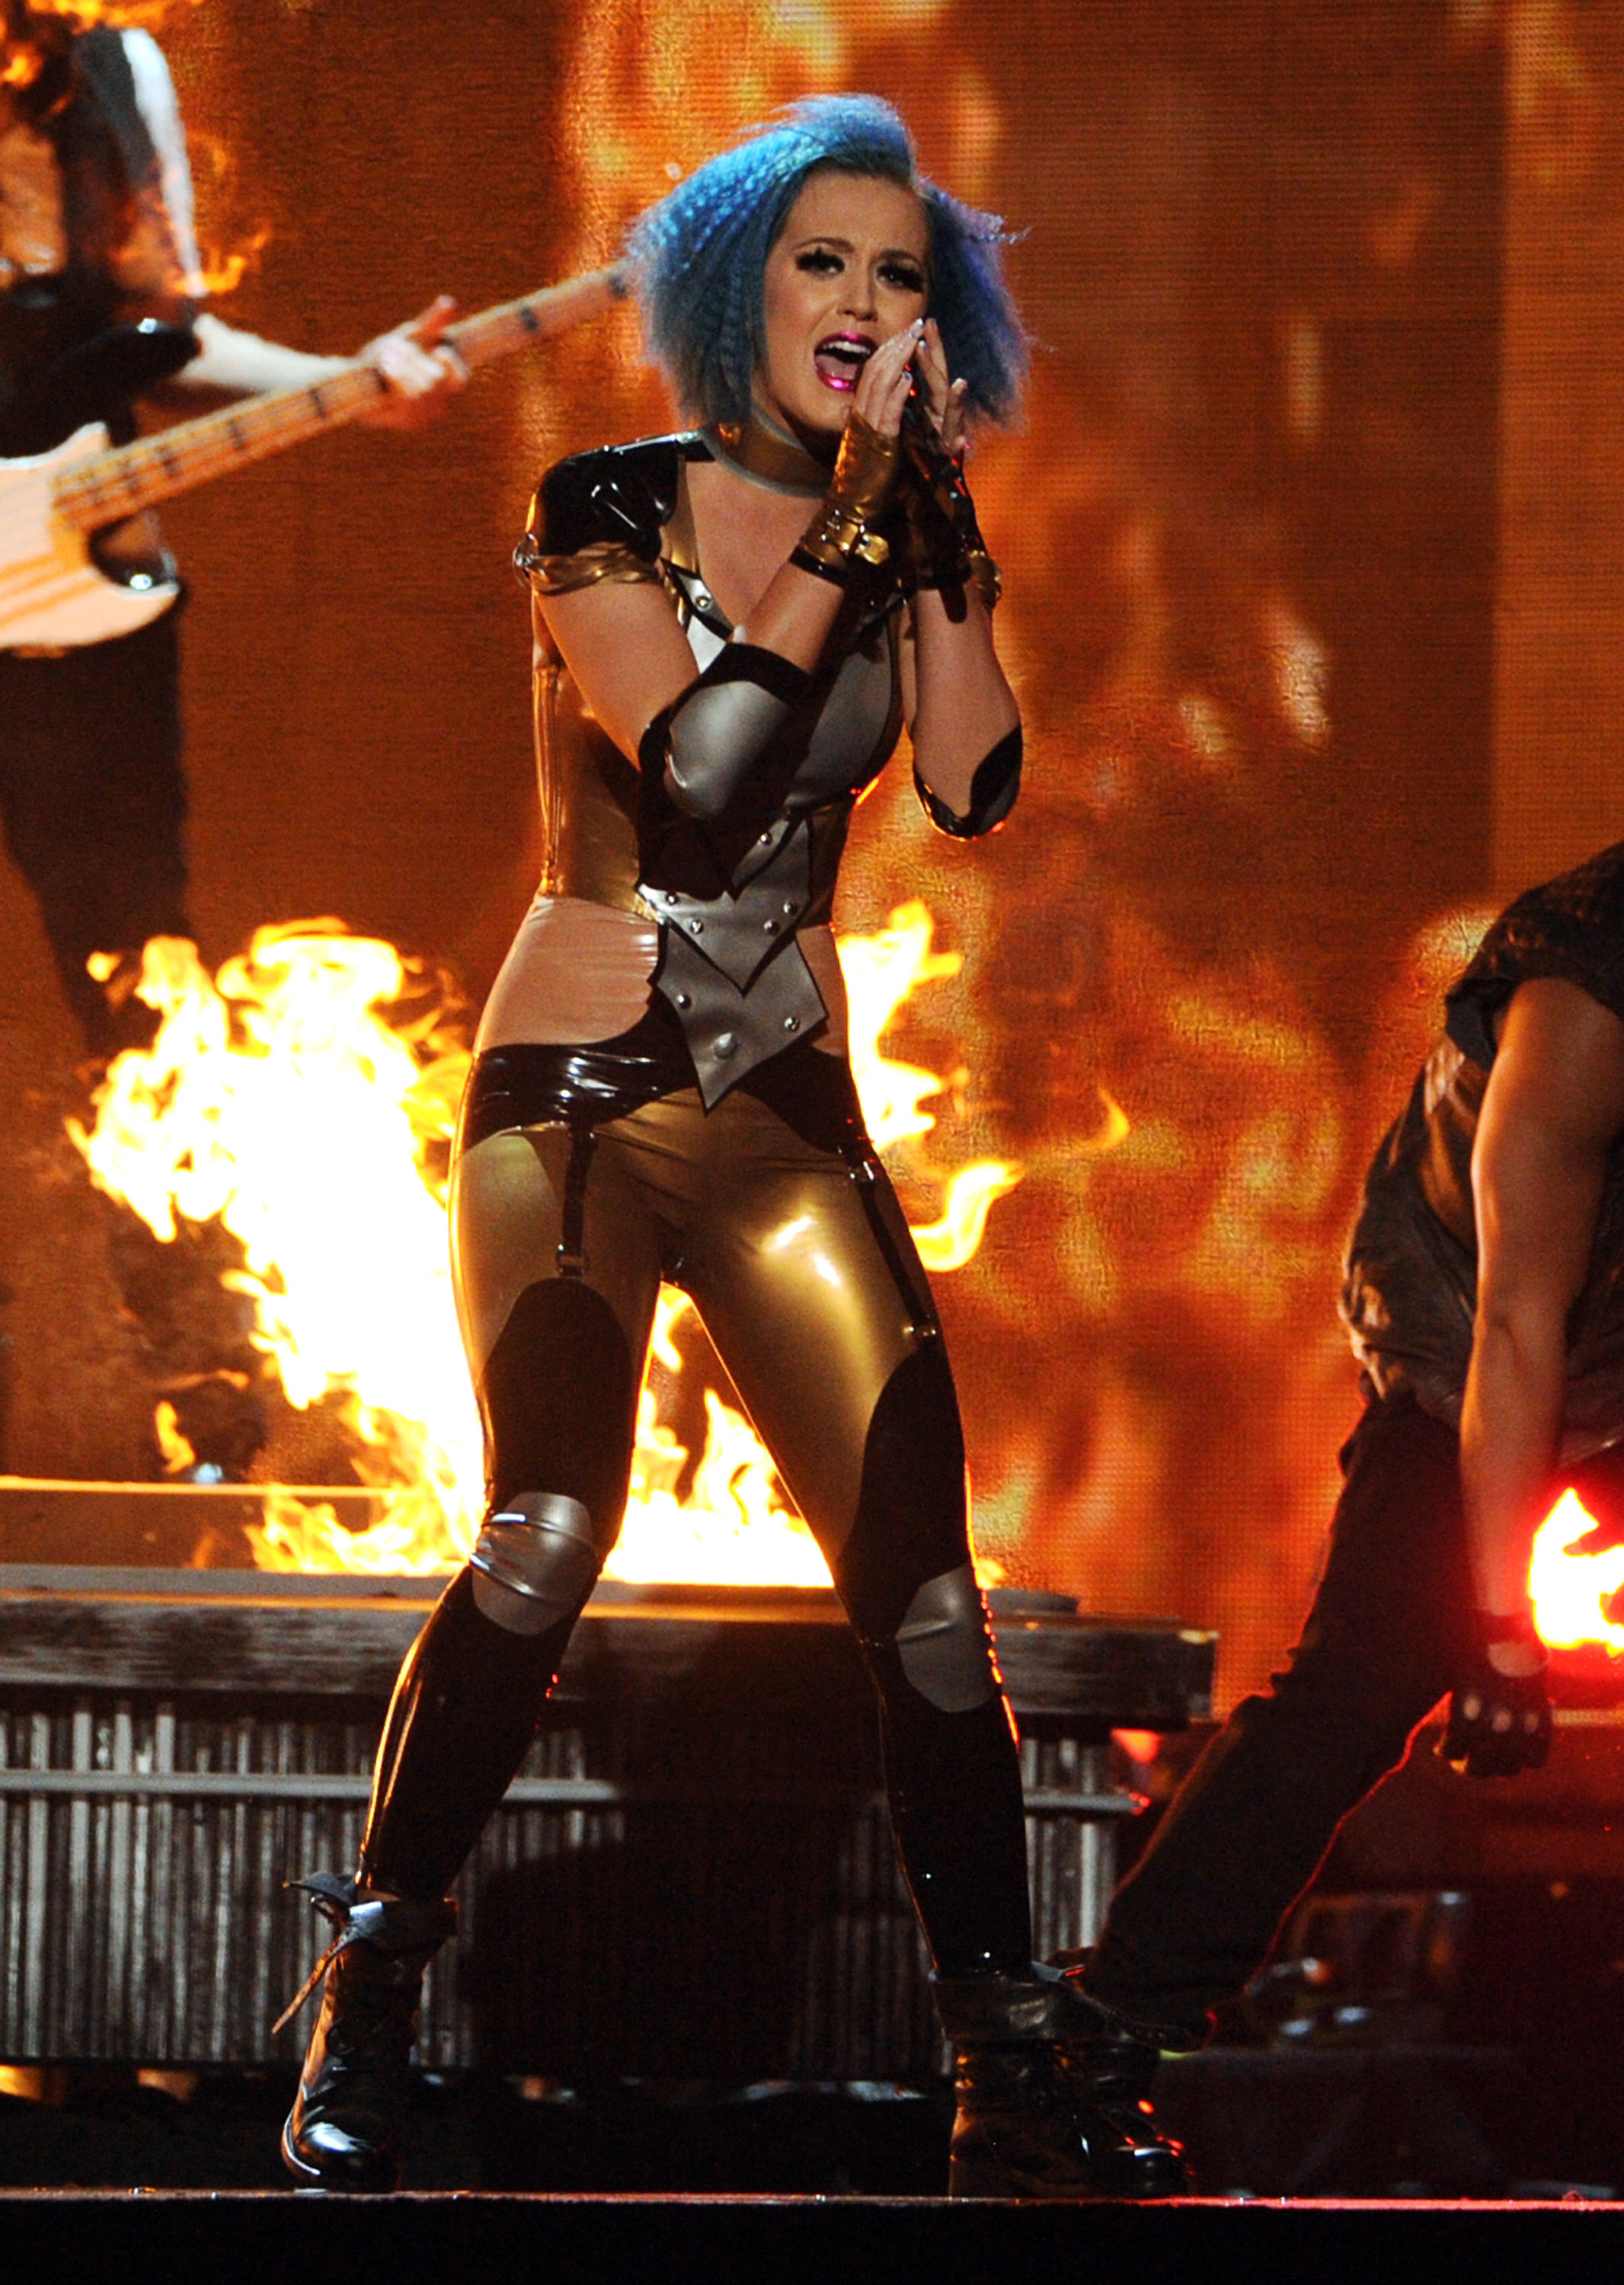 Katy Perry poured her heart and soul into her performance.